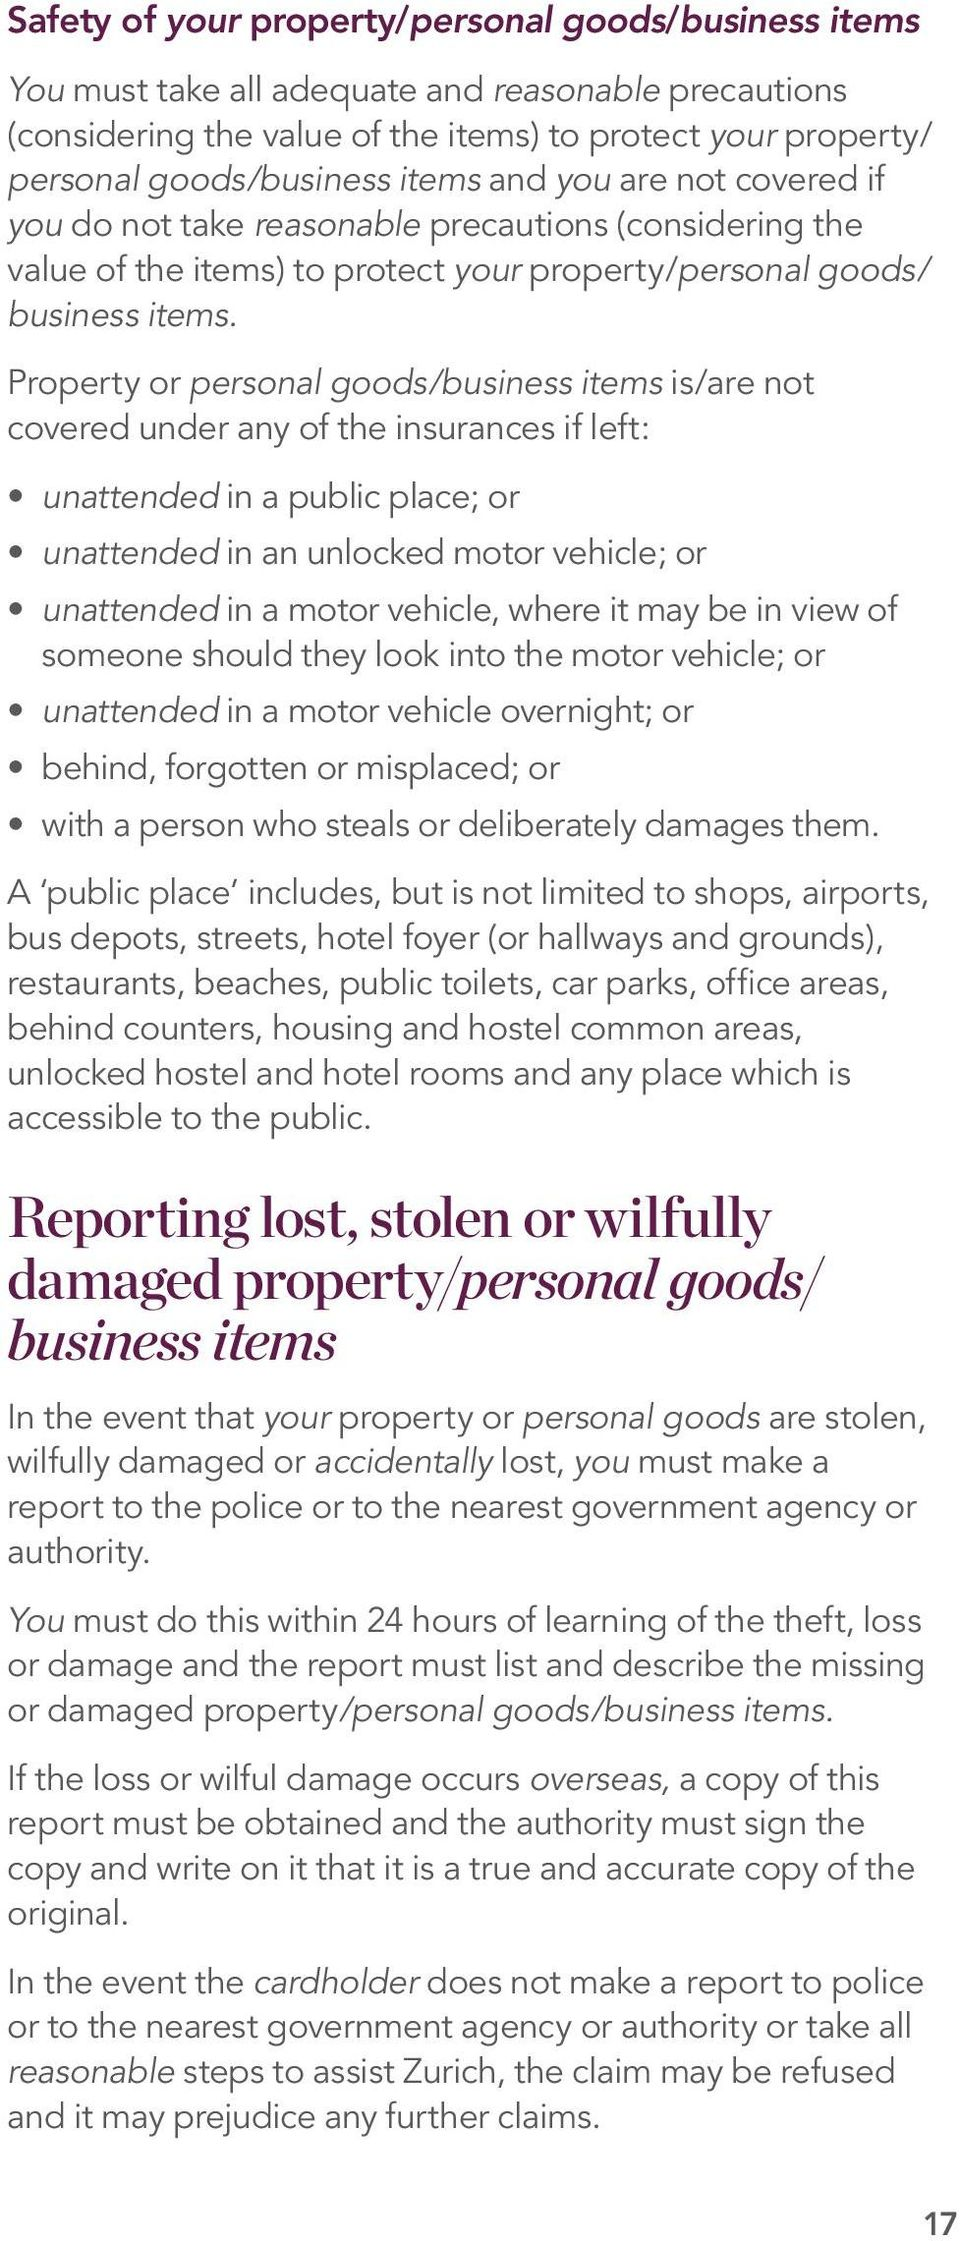 Property or personal goods/business items is/are not covered under any of the insurances if left: unattended in a public place; or unattended in an unlocked motor vehicle; or unattended in a motor